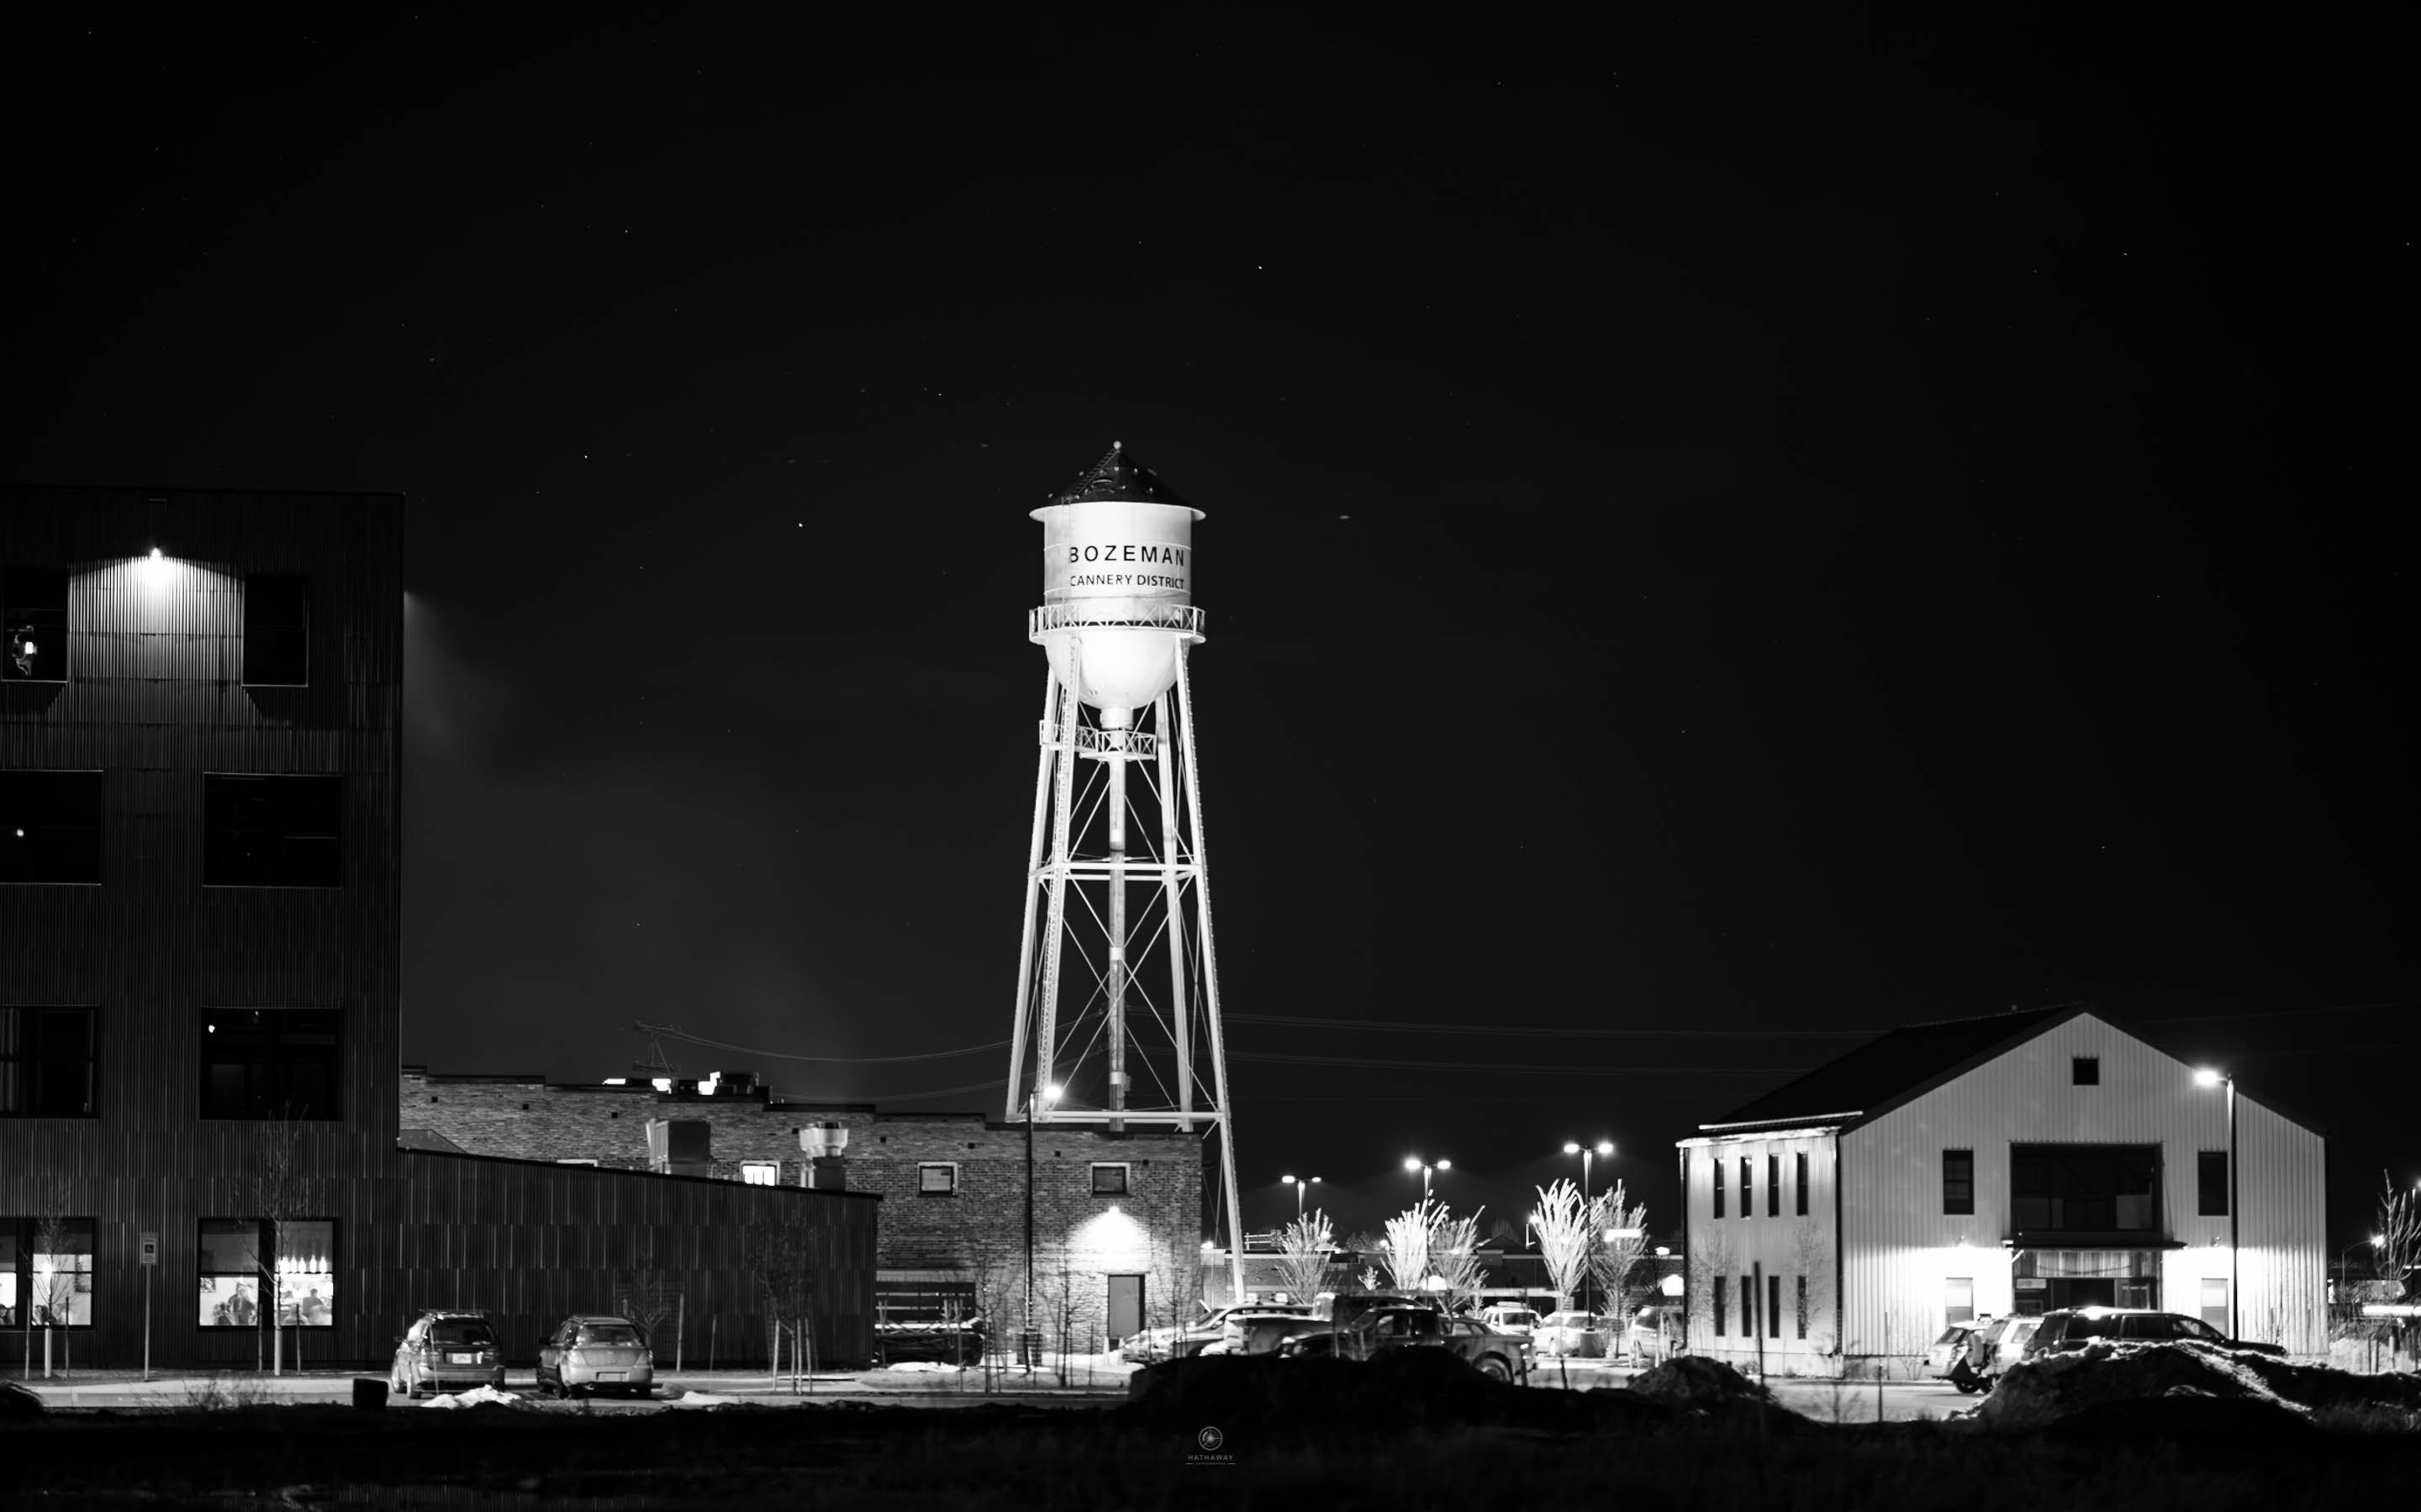 Bozeman Cannery District Watertower